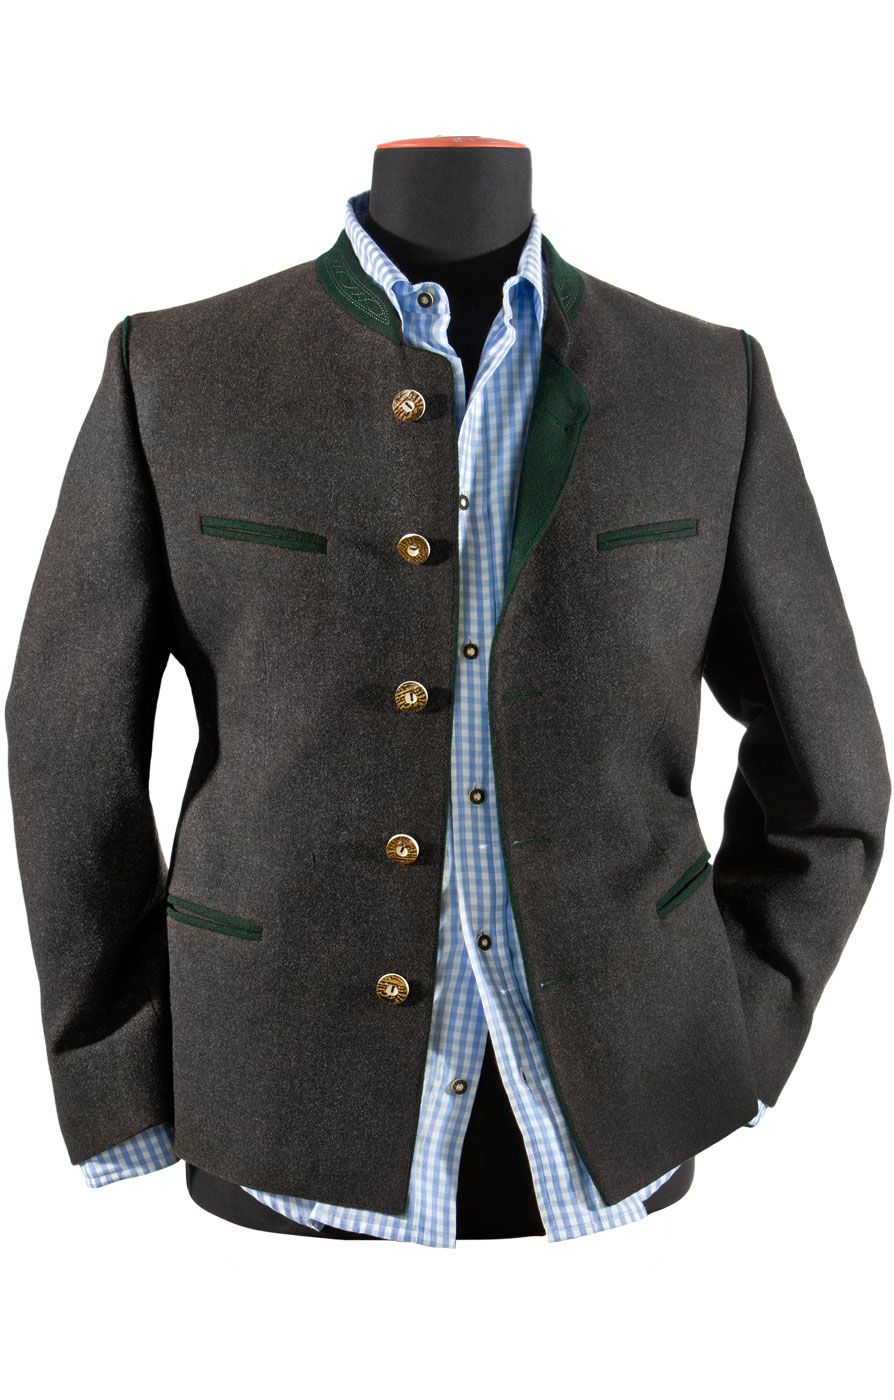 34133b0be50f8 MY AUSTRIAN JACKET | The Sound of Music | Traditional jacket, Mens ...